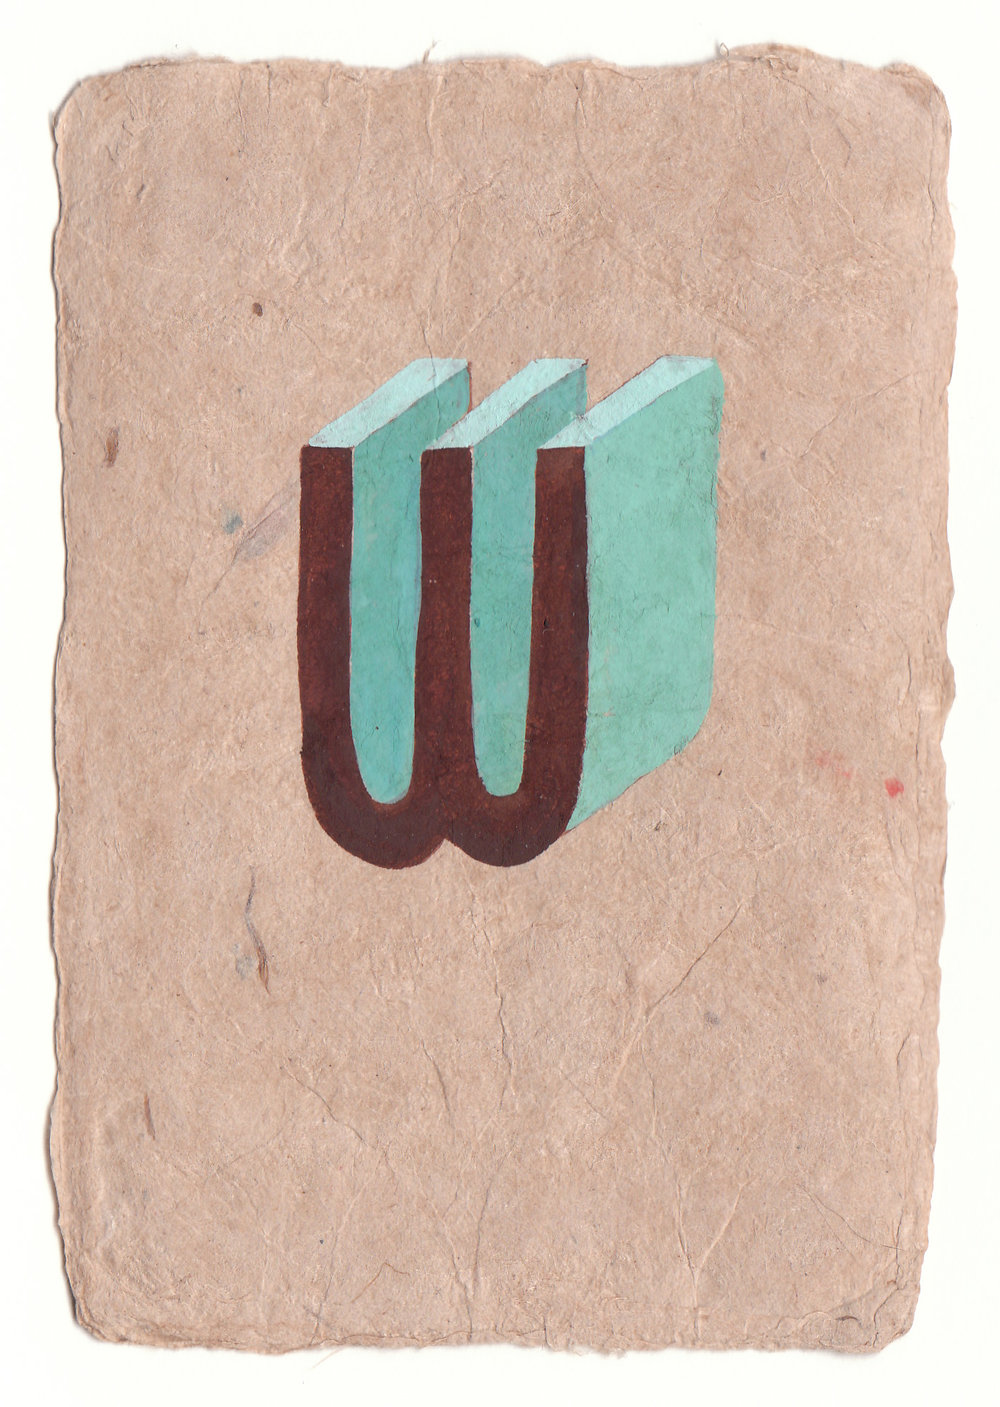 W in Brown.jpg